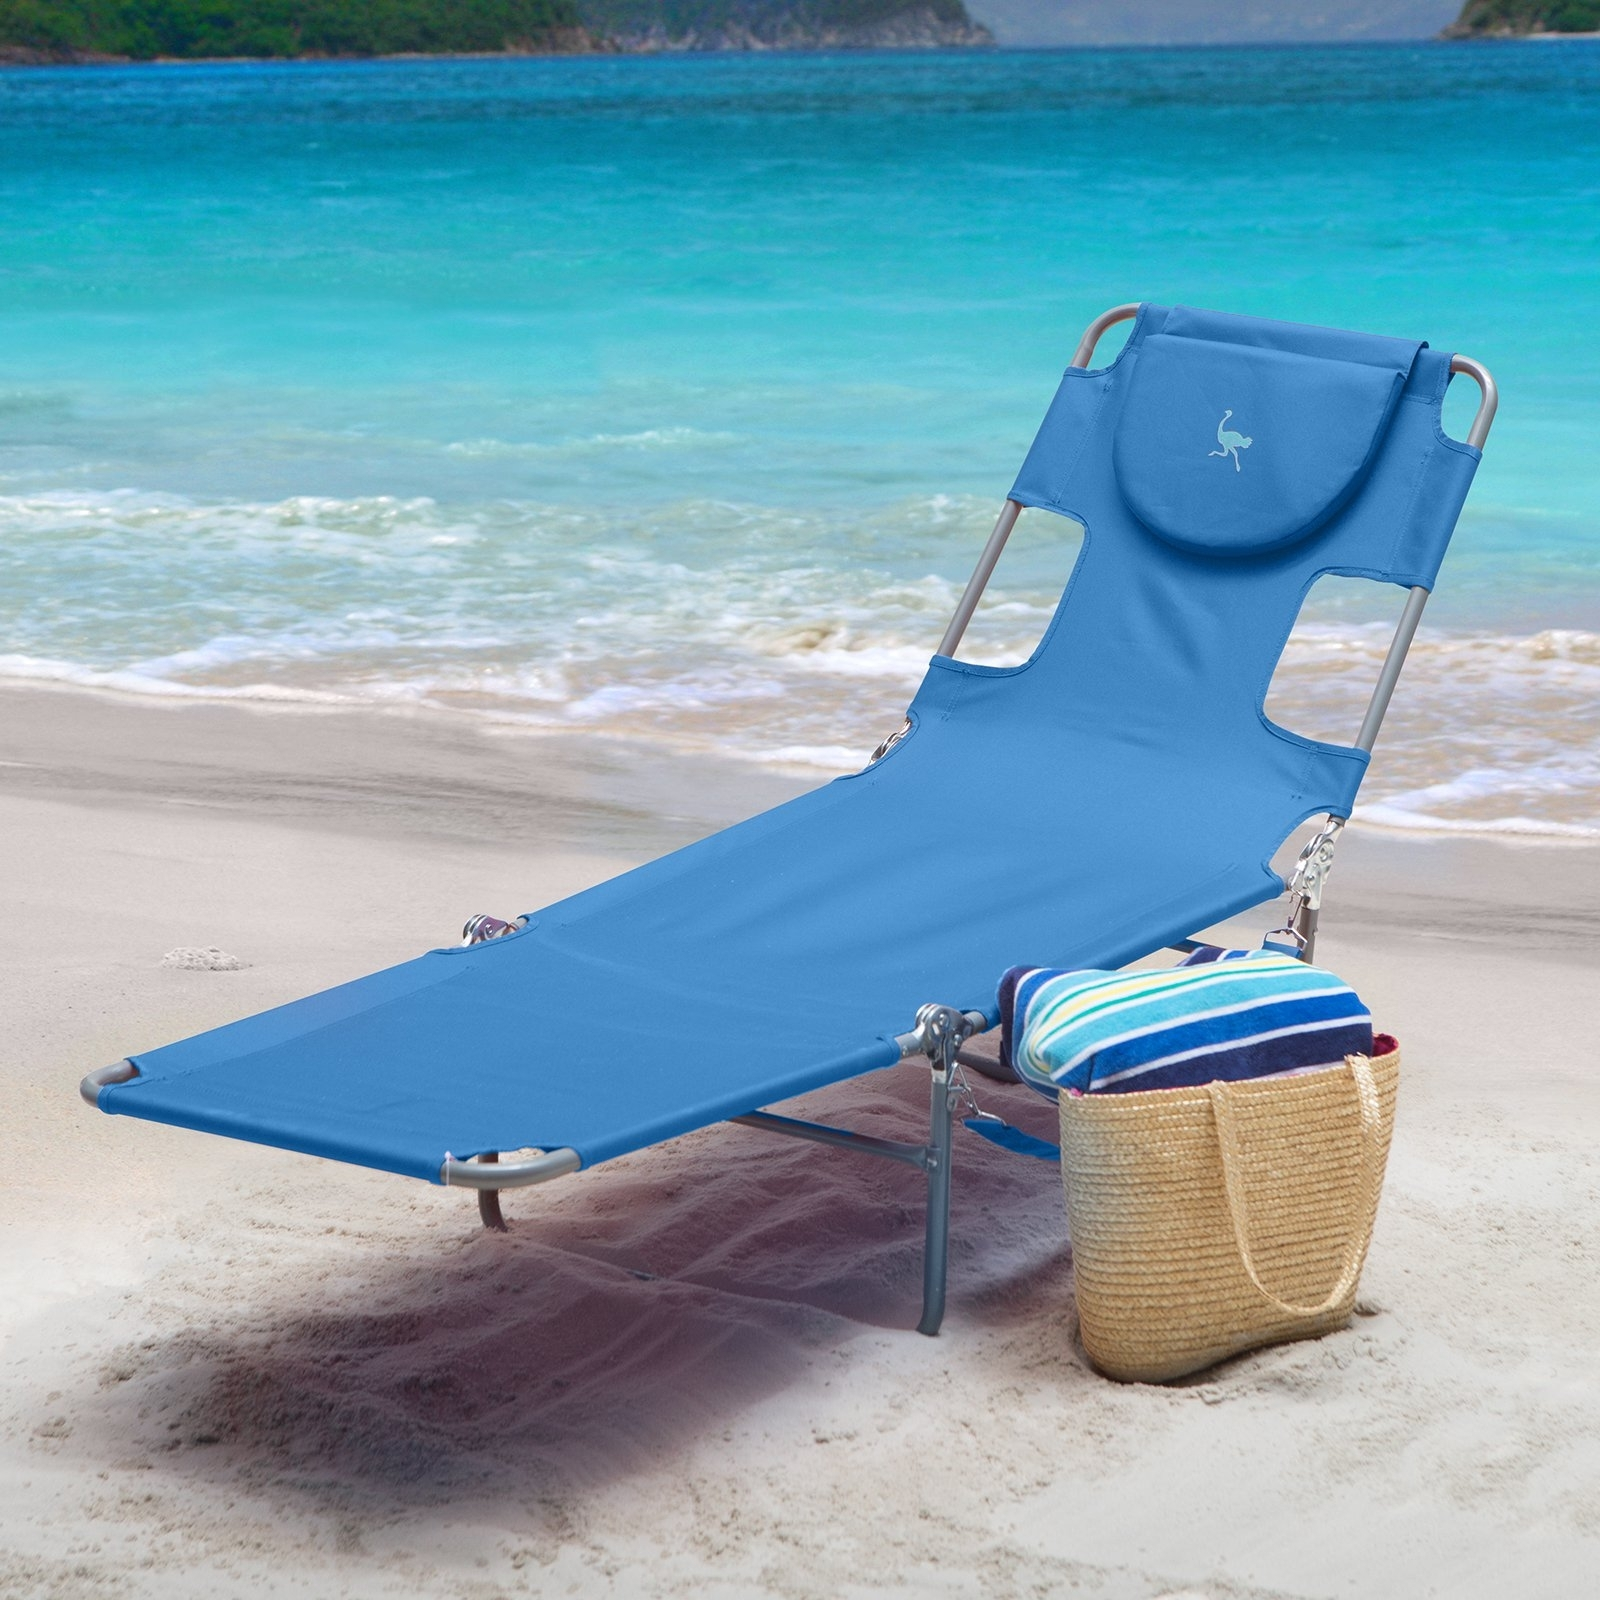 Picture 5 Of 39 – Chaise Lounge Beach Chair Awesome Chaise Beach Regarding Most Popular Beach Chaise Lounge Chairs (View 7 of 15)